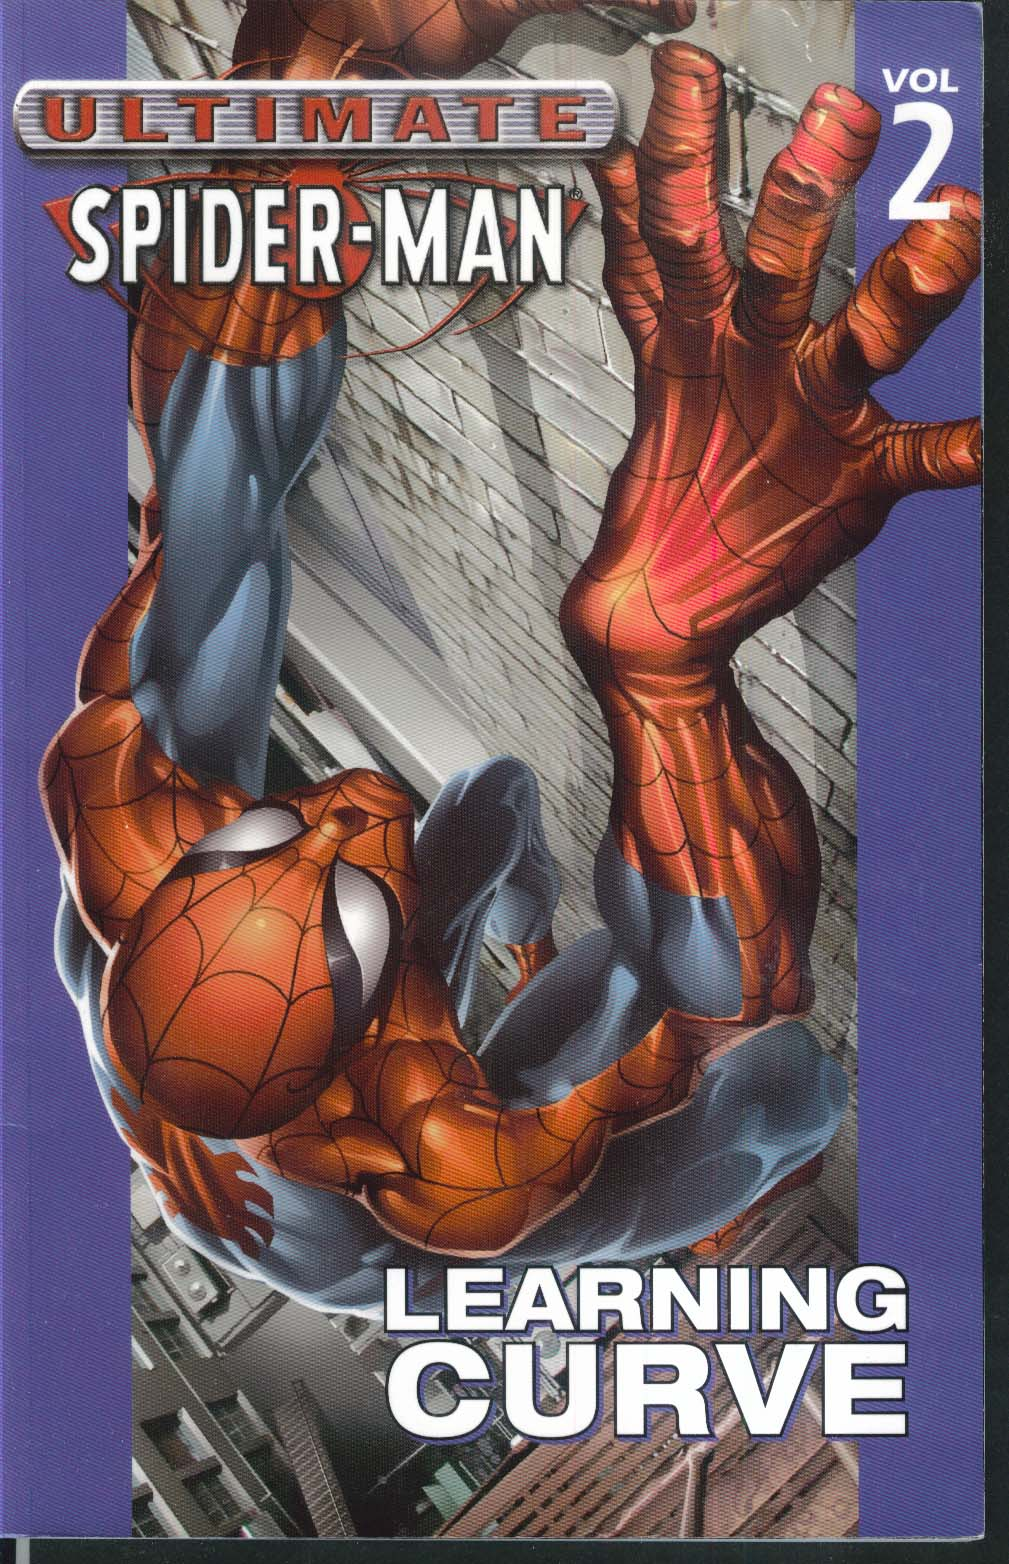 ULTIMATE SPIDER-MAN Vol 2 Learning Curve Marvel Graphic Novel 5th Printing 2004